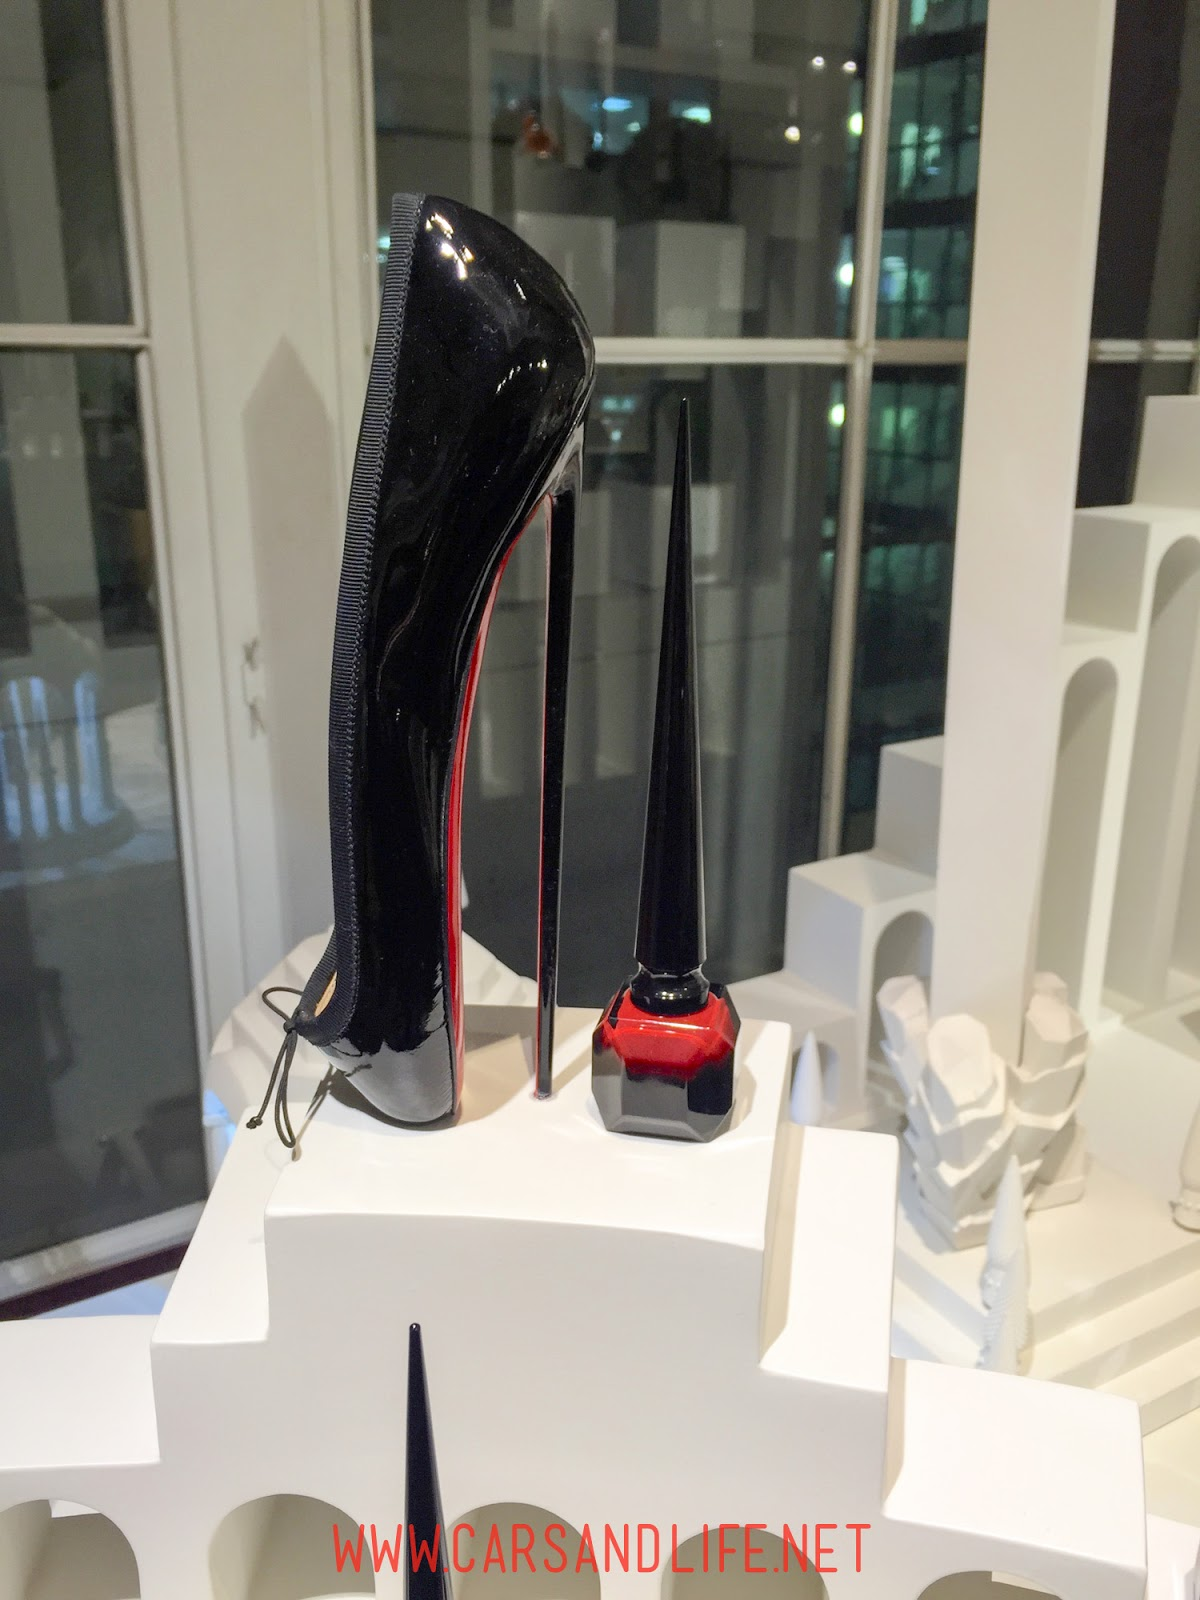 Christian Louboutin 8 Inch Ballet Heels From Selfridges London